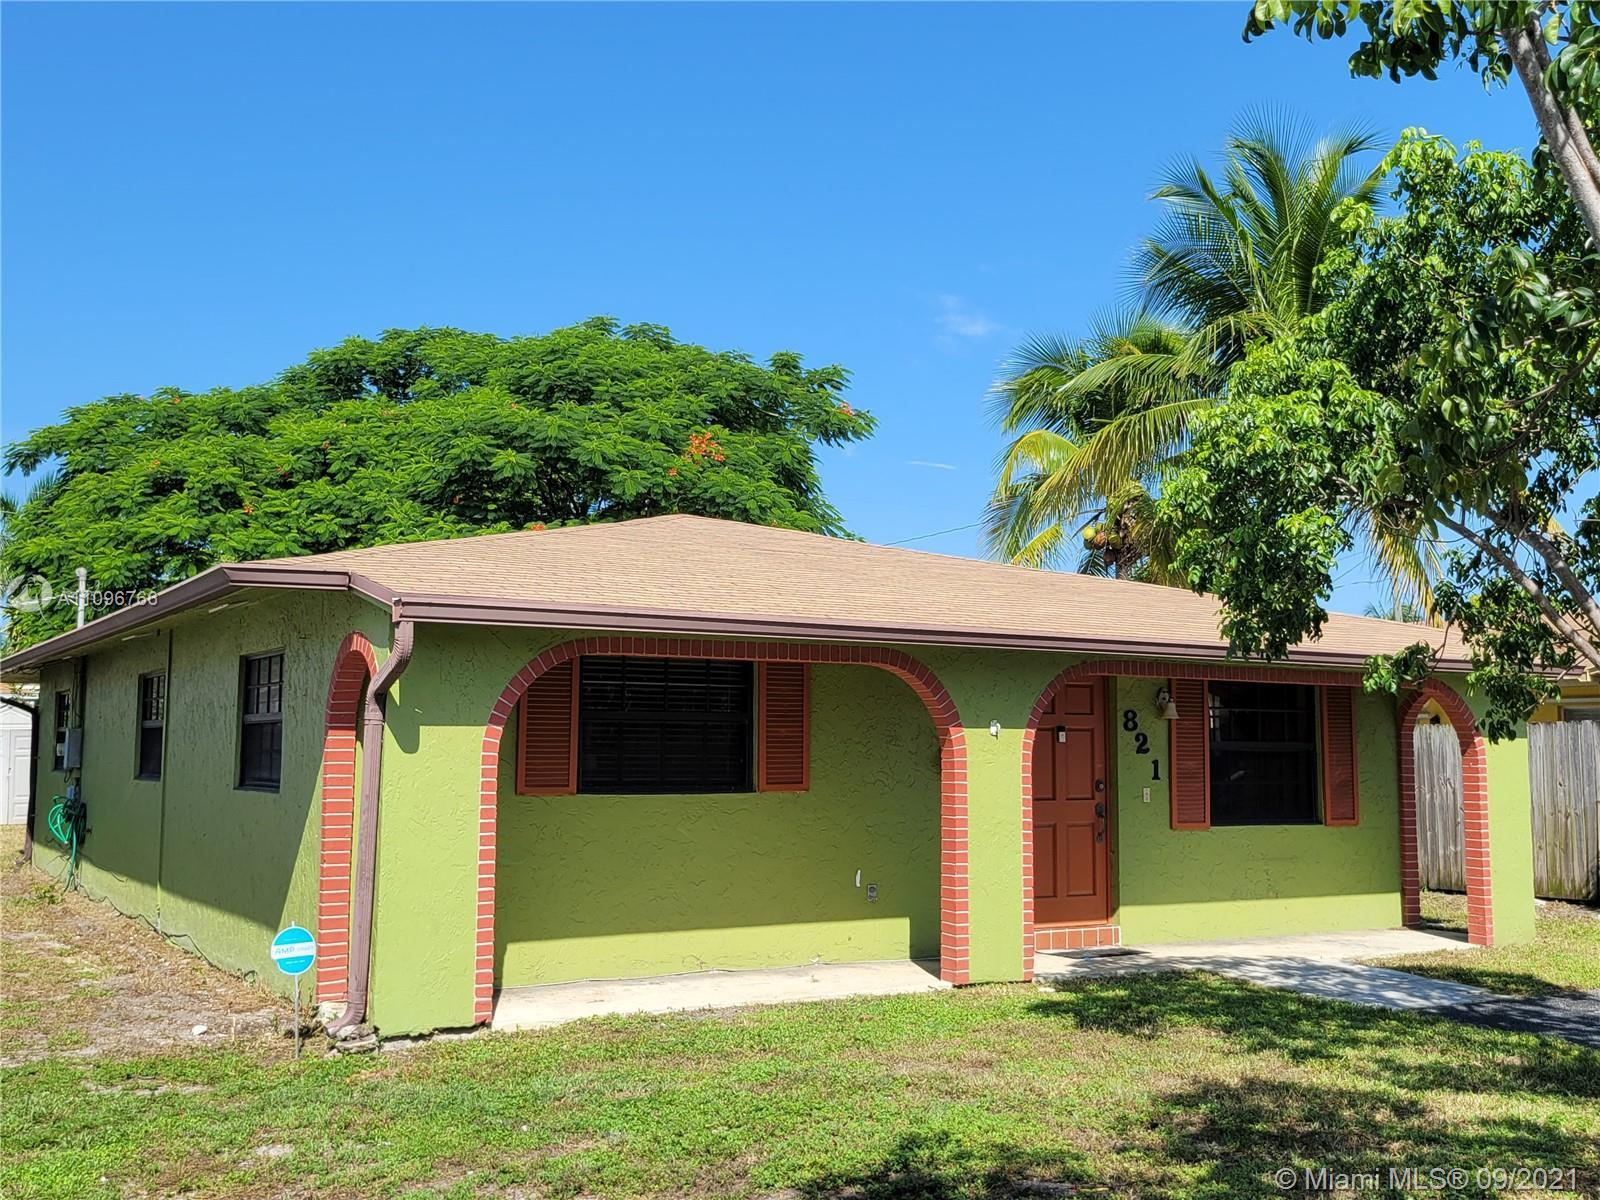 New Roof - New A/C - Hurricane Windows. SOLID 3/2 SINGLE FAMILY HOME IN THE HEART OF POMPANO BEACH W